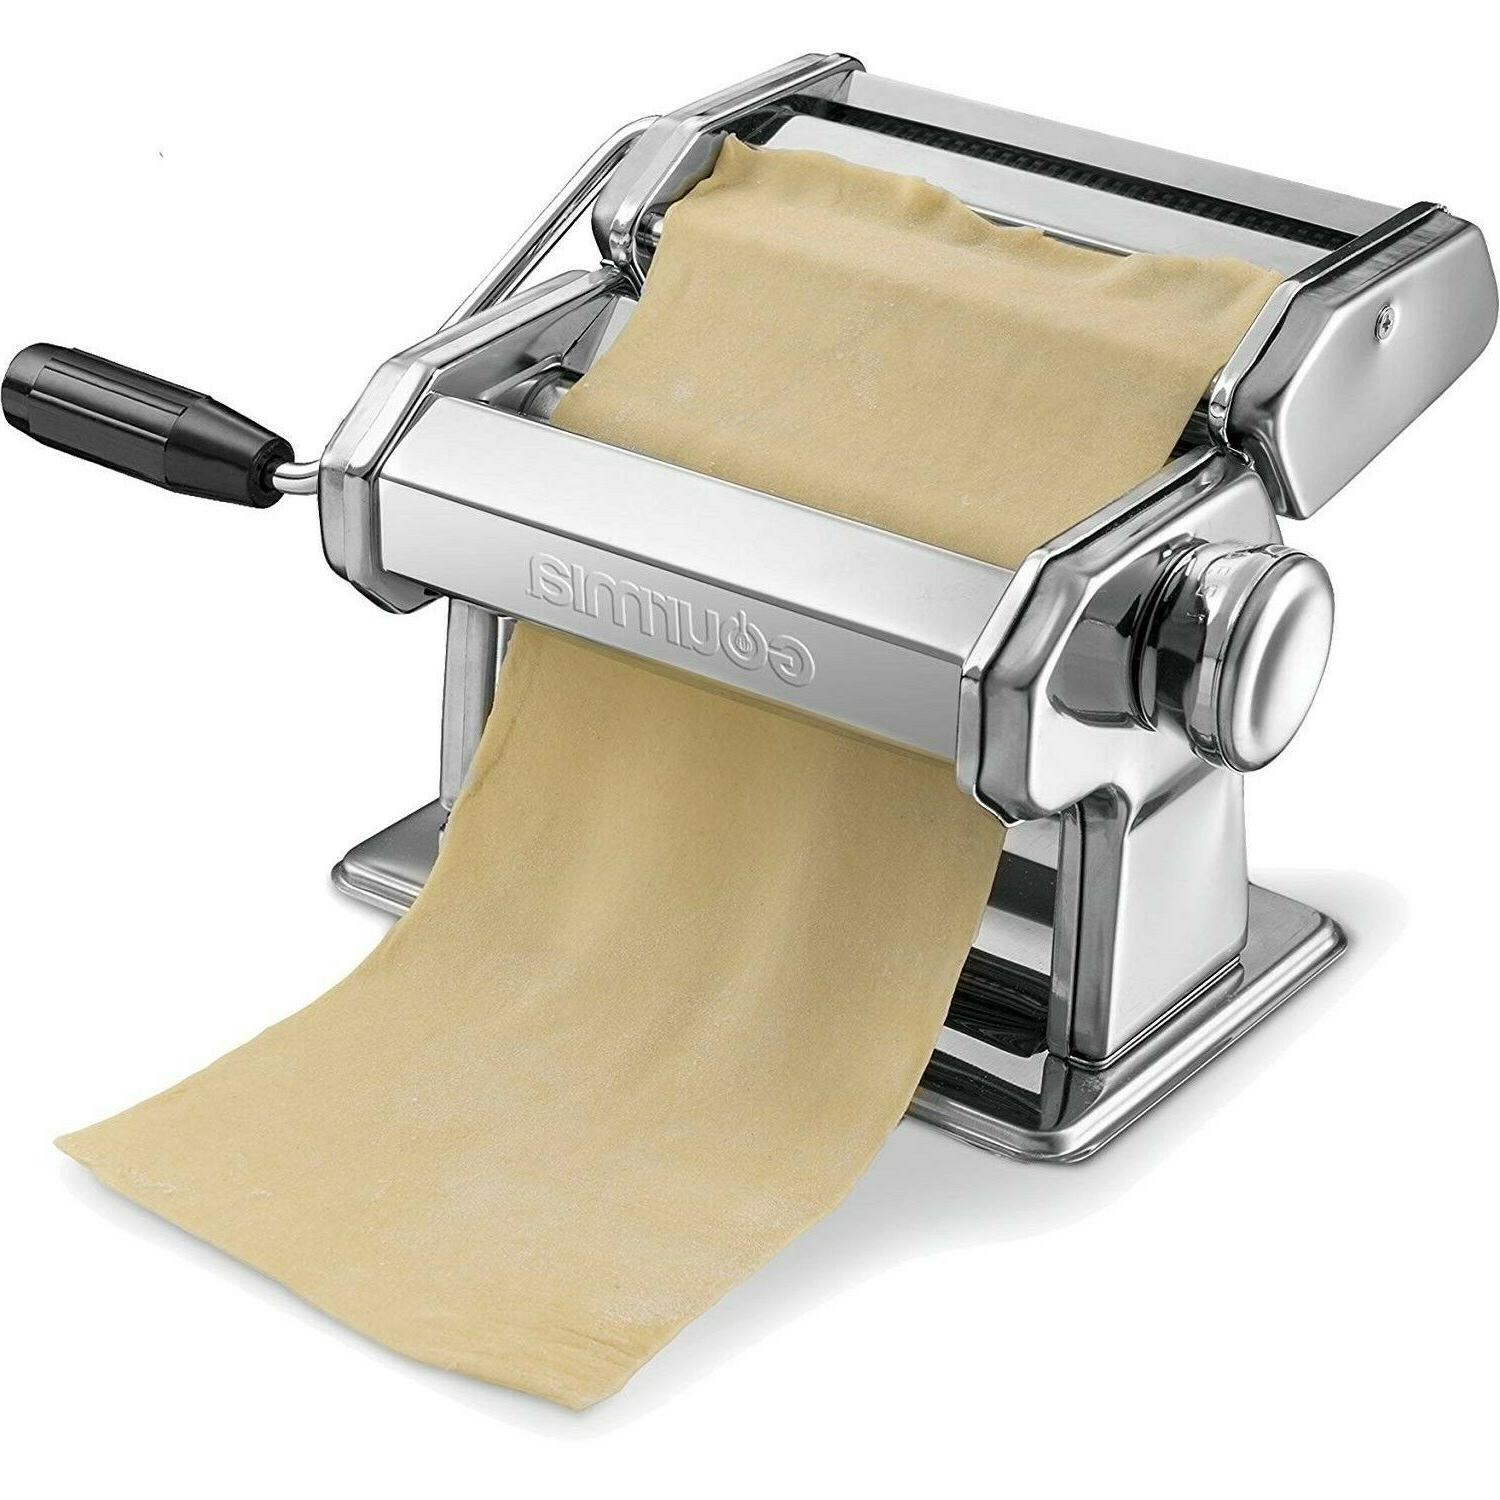 maker pasta spaghetti roller machine slicer stainless